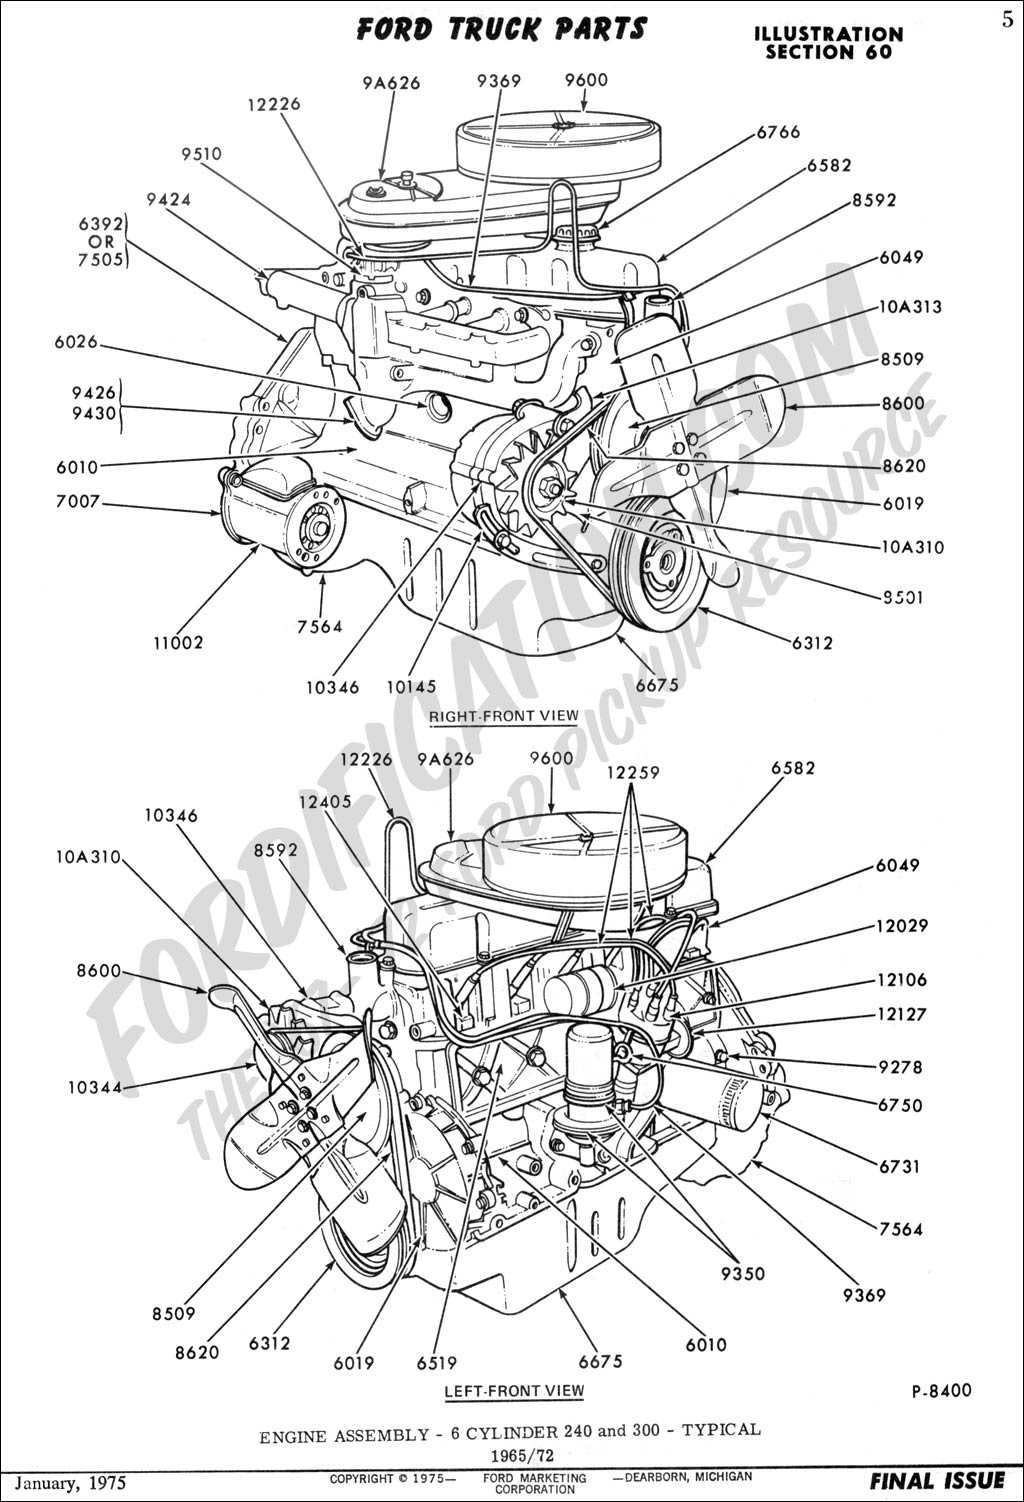 Ford Engine Diagram : Engine parts diagram ford cylinder heads free